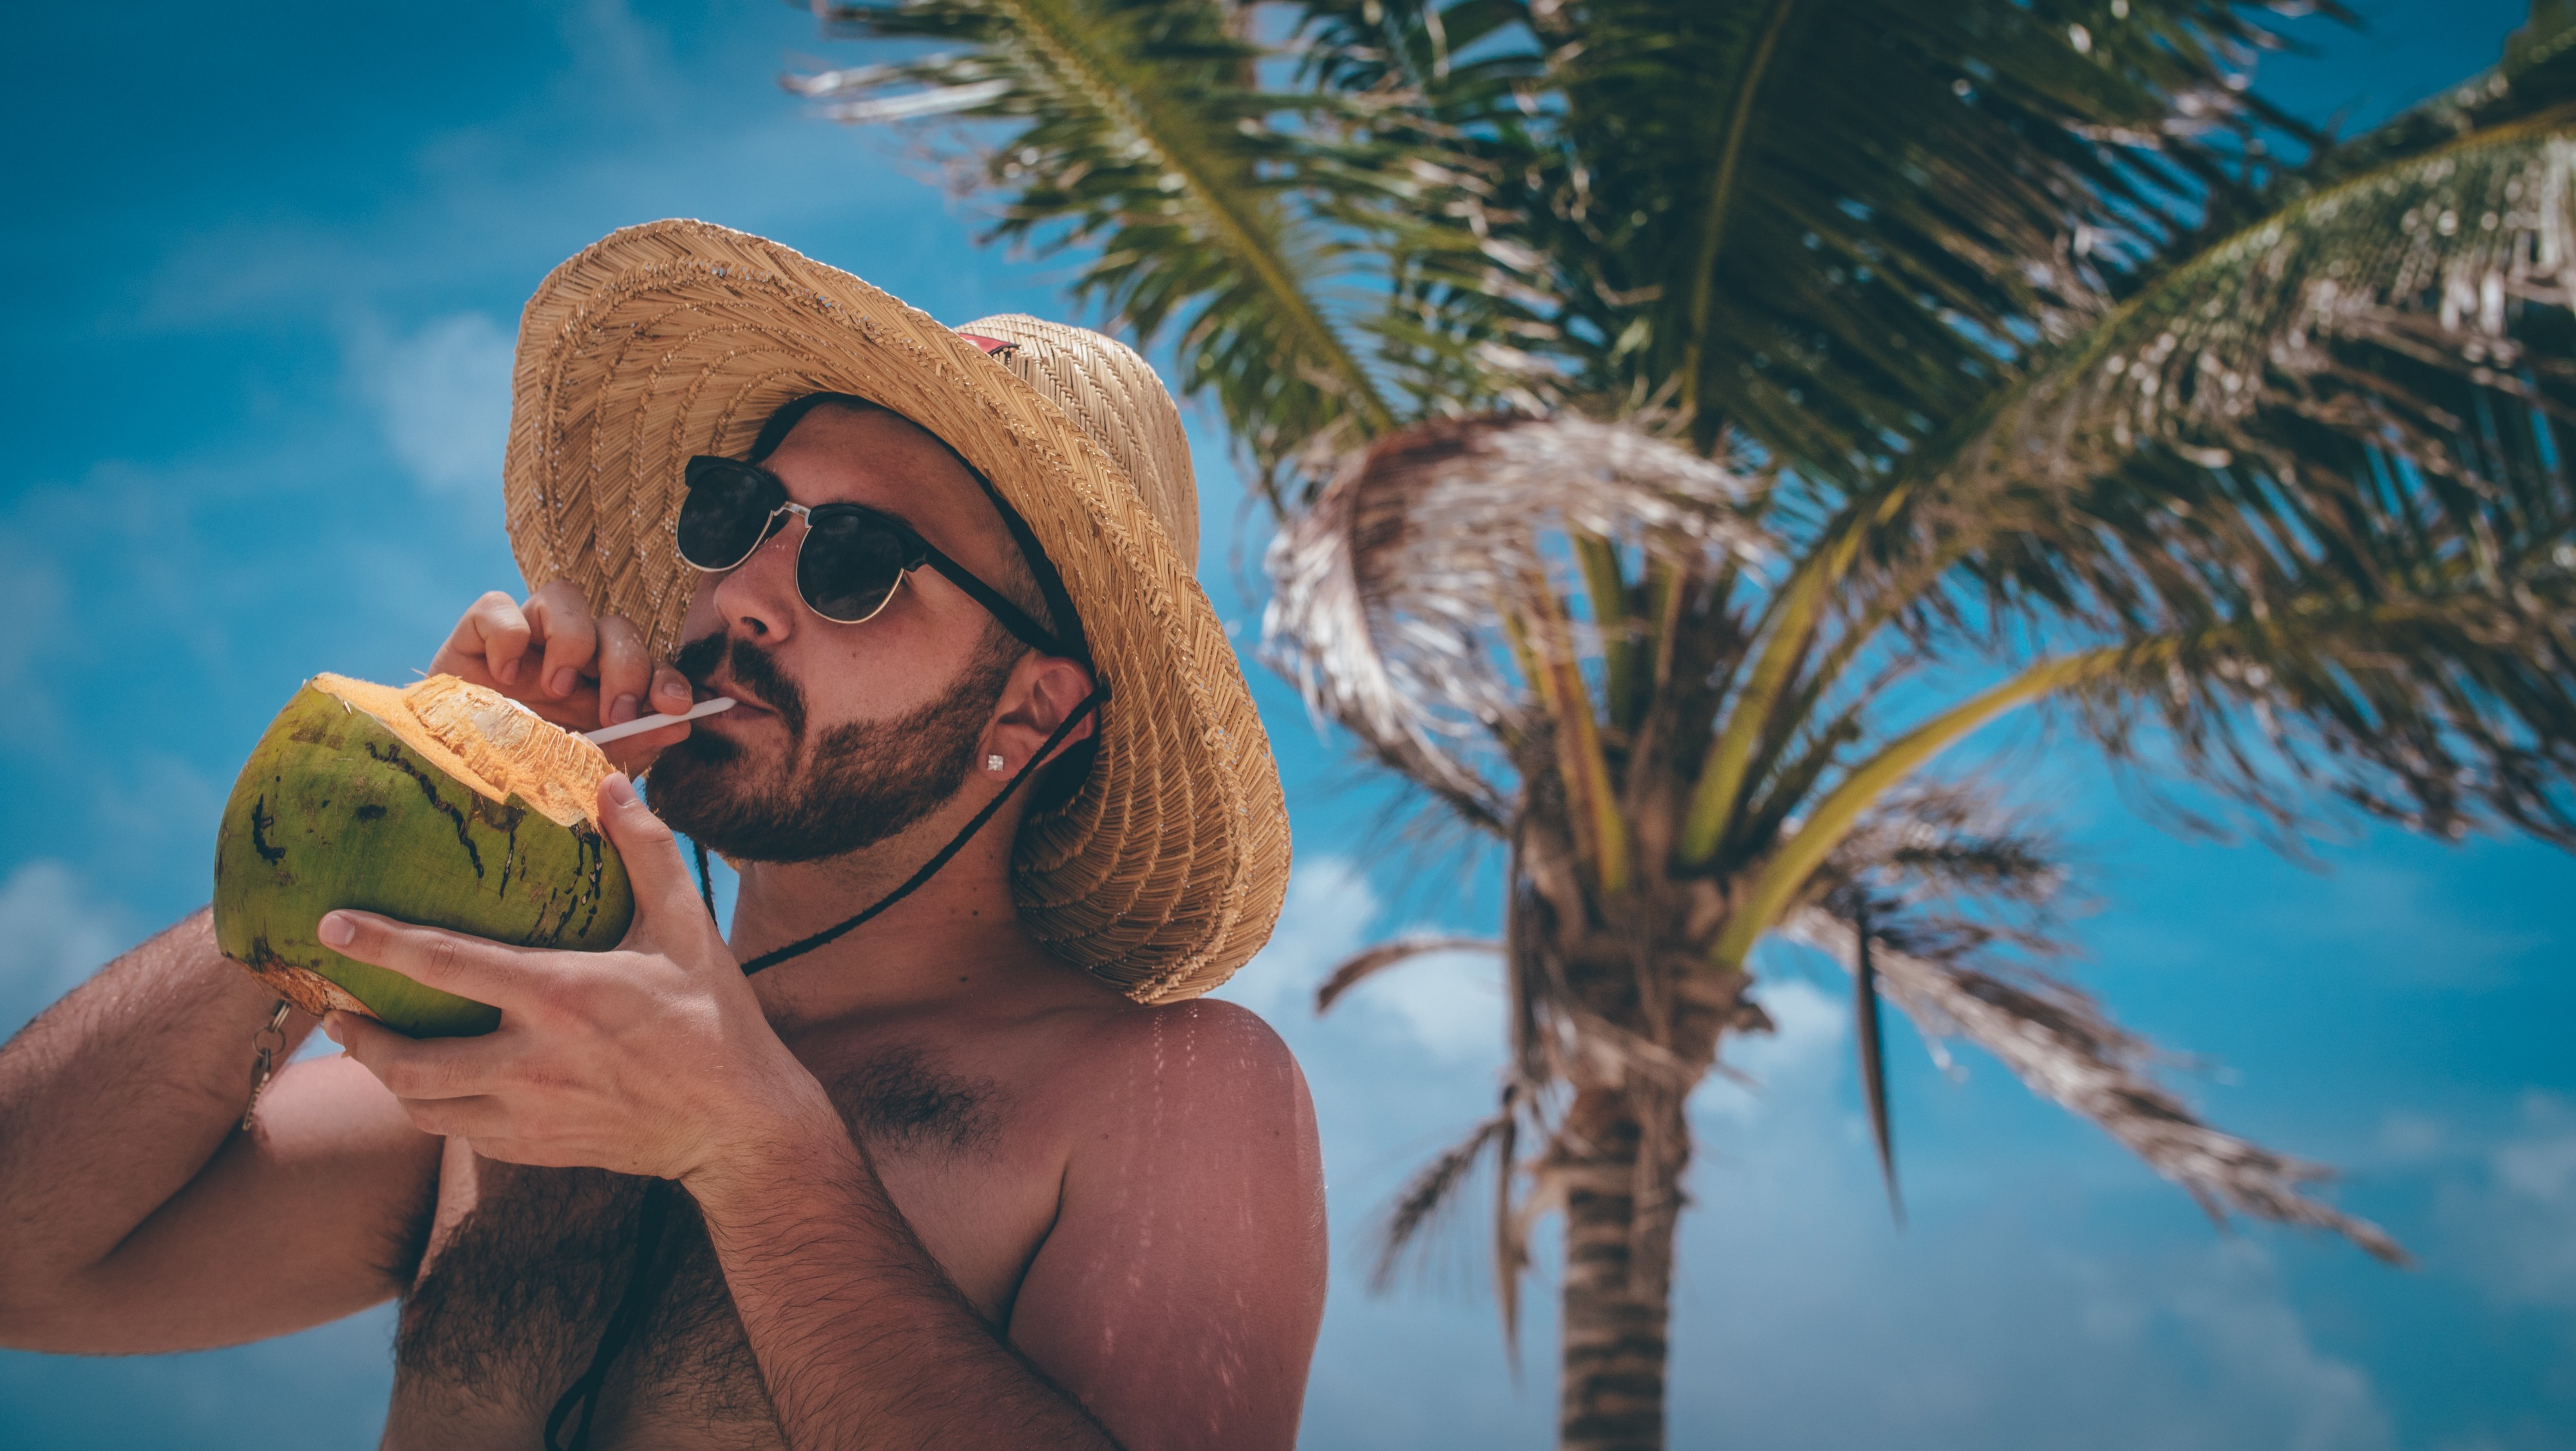 Man with hat on the beach in the sunshine drinking juice from coconut with coconut tree behind him